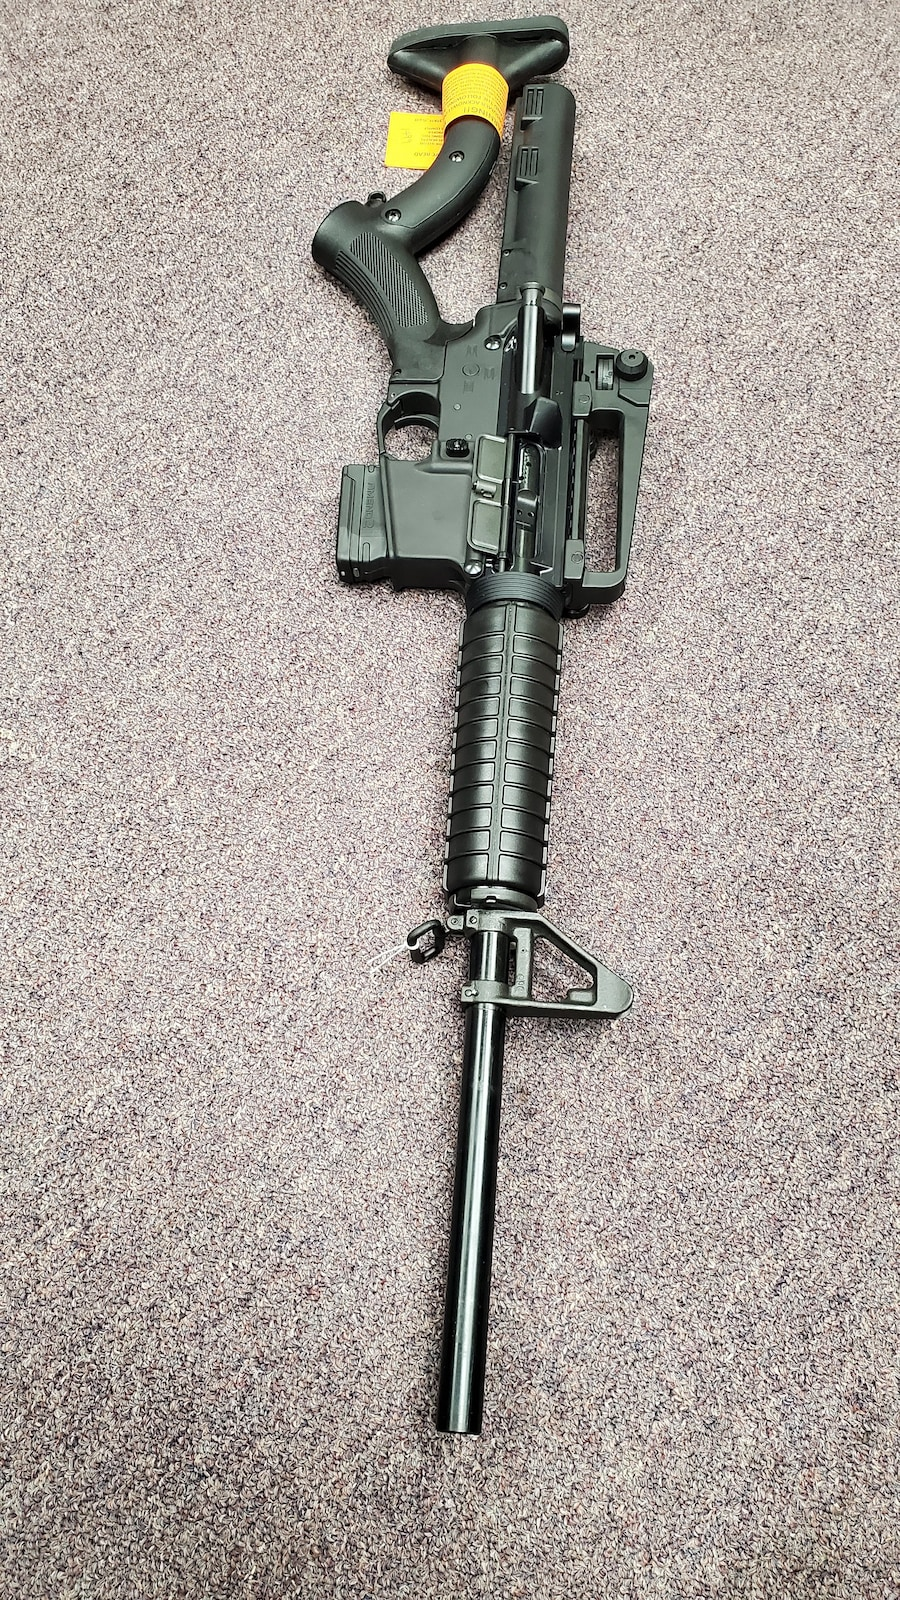 ANDERSON MFG. Featureless AR15 M4 AM15 WITH thordsen stock & non-threaded barrel